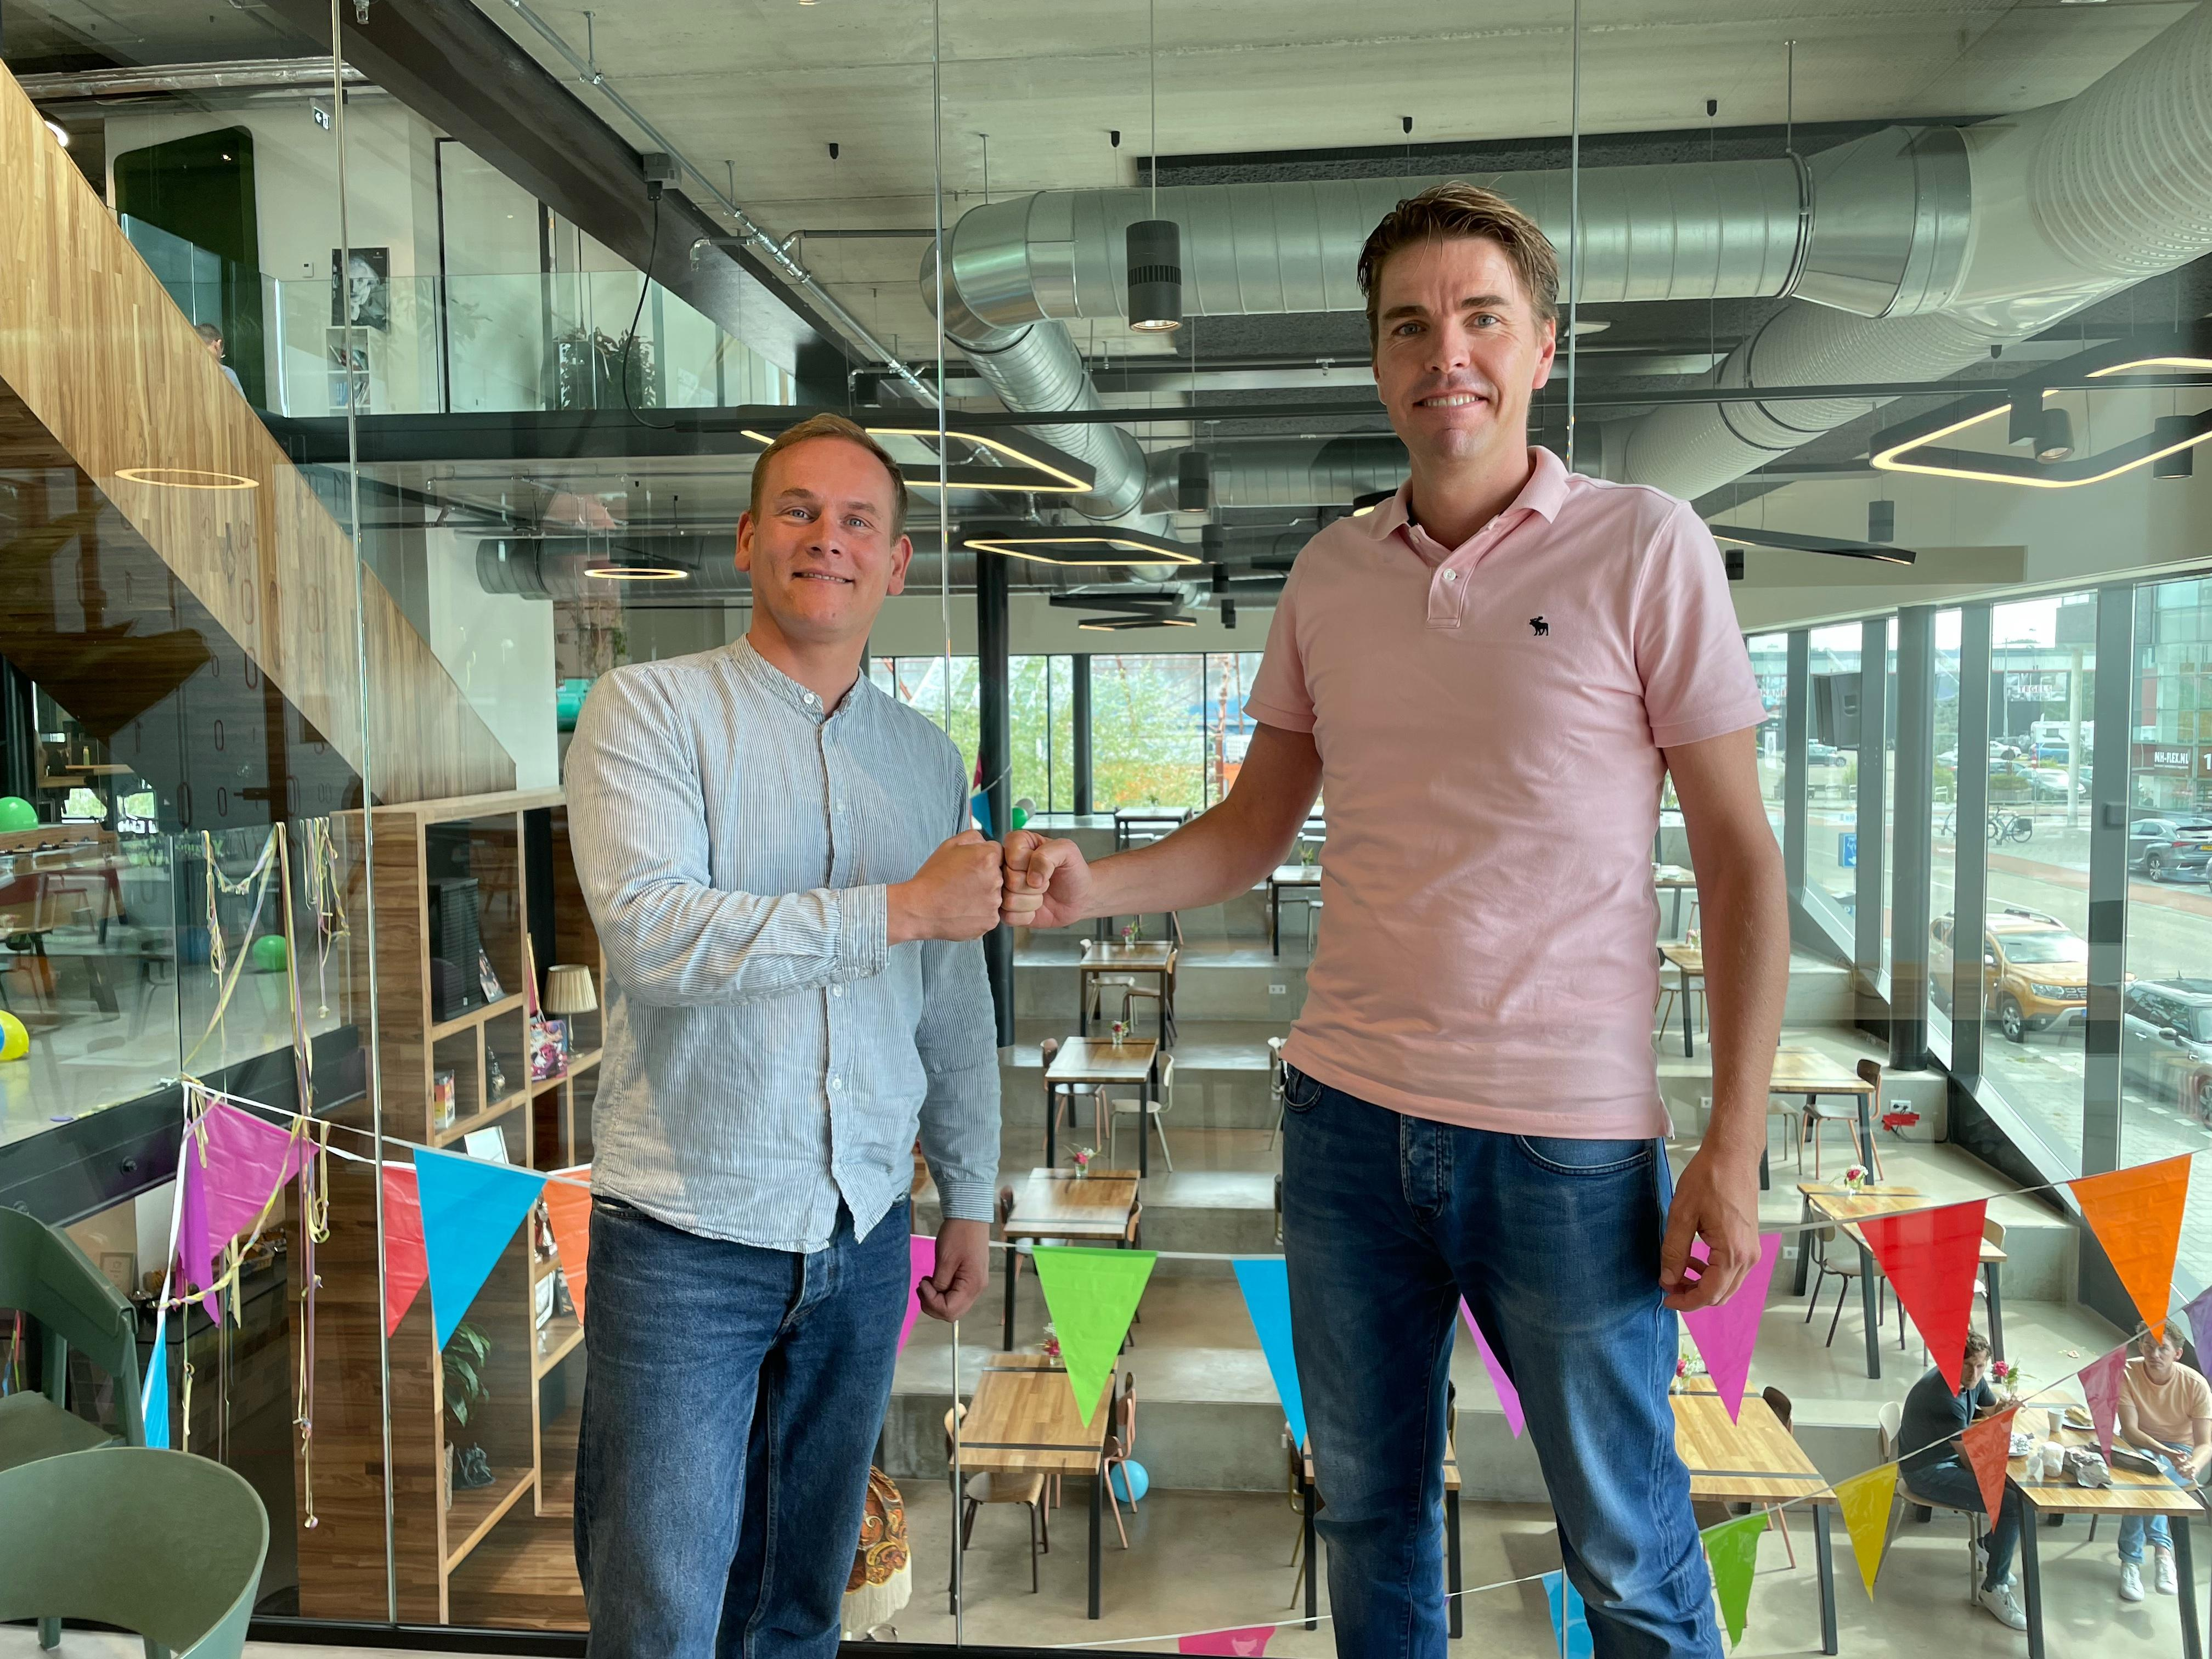 Betty Blocks and SoftwareONE join forces in new partnership  (image)